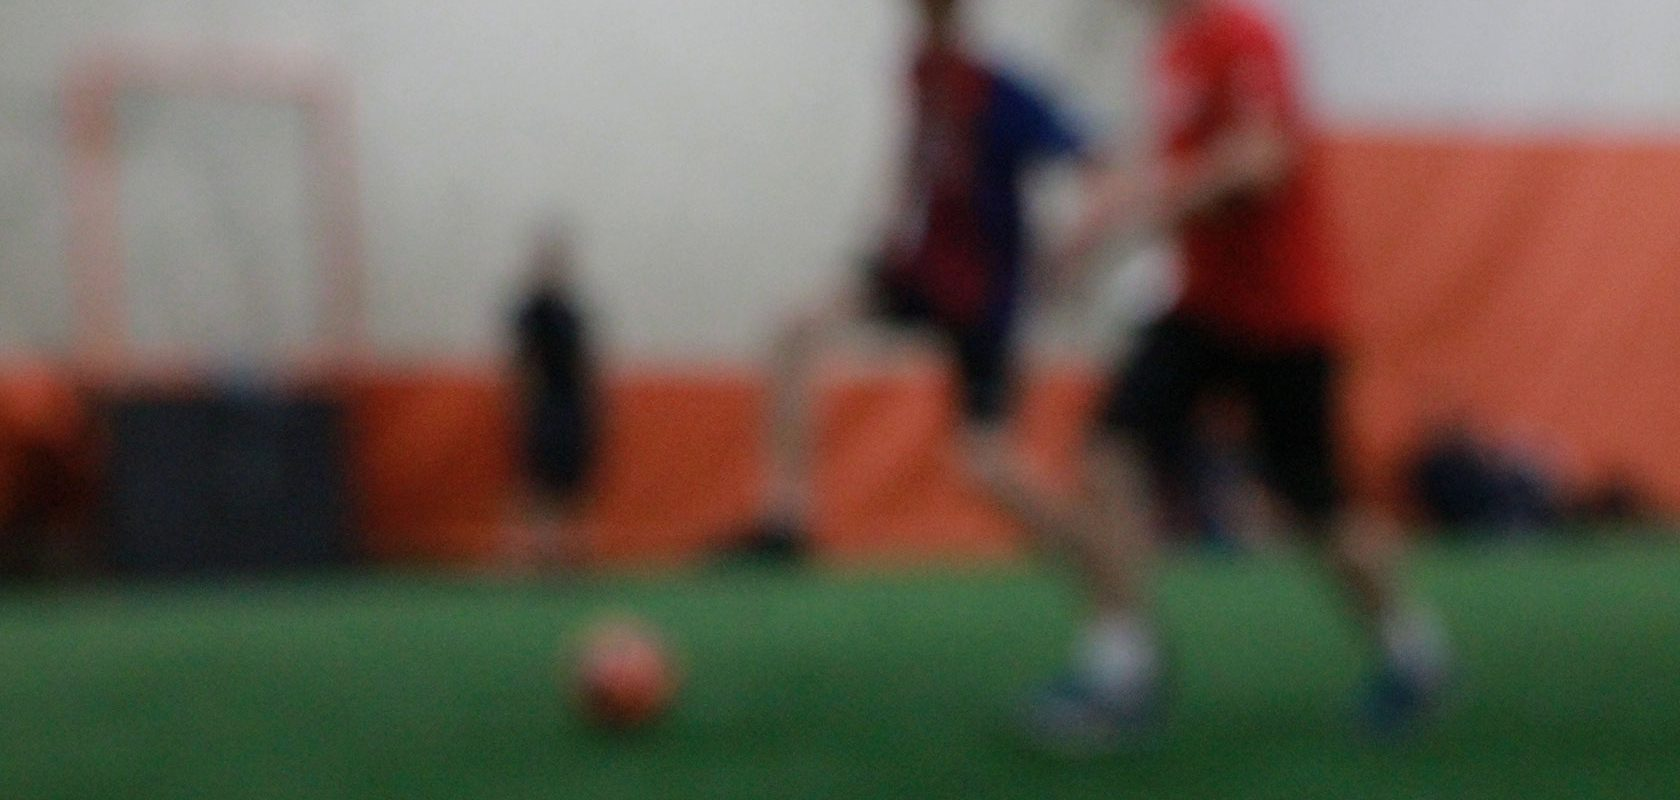 Soccer Players Game Blur